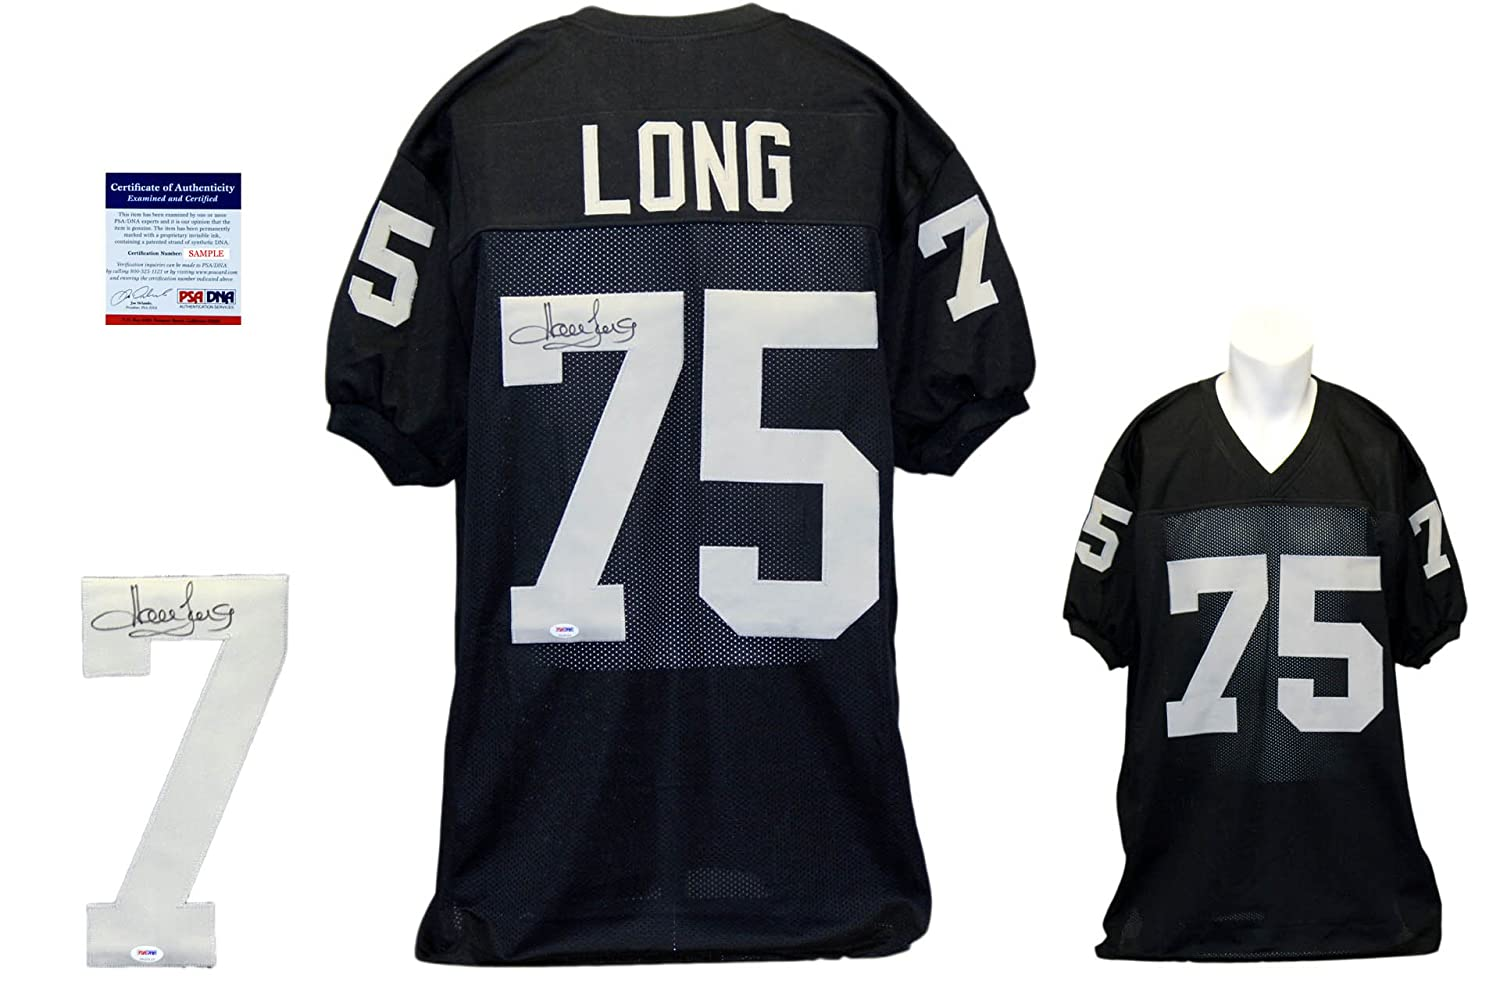 huge selection of f8c93 20010 Howie Long Signed Custom Jersey - PSA/DNA - Autographed - Black